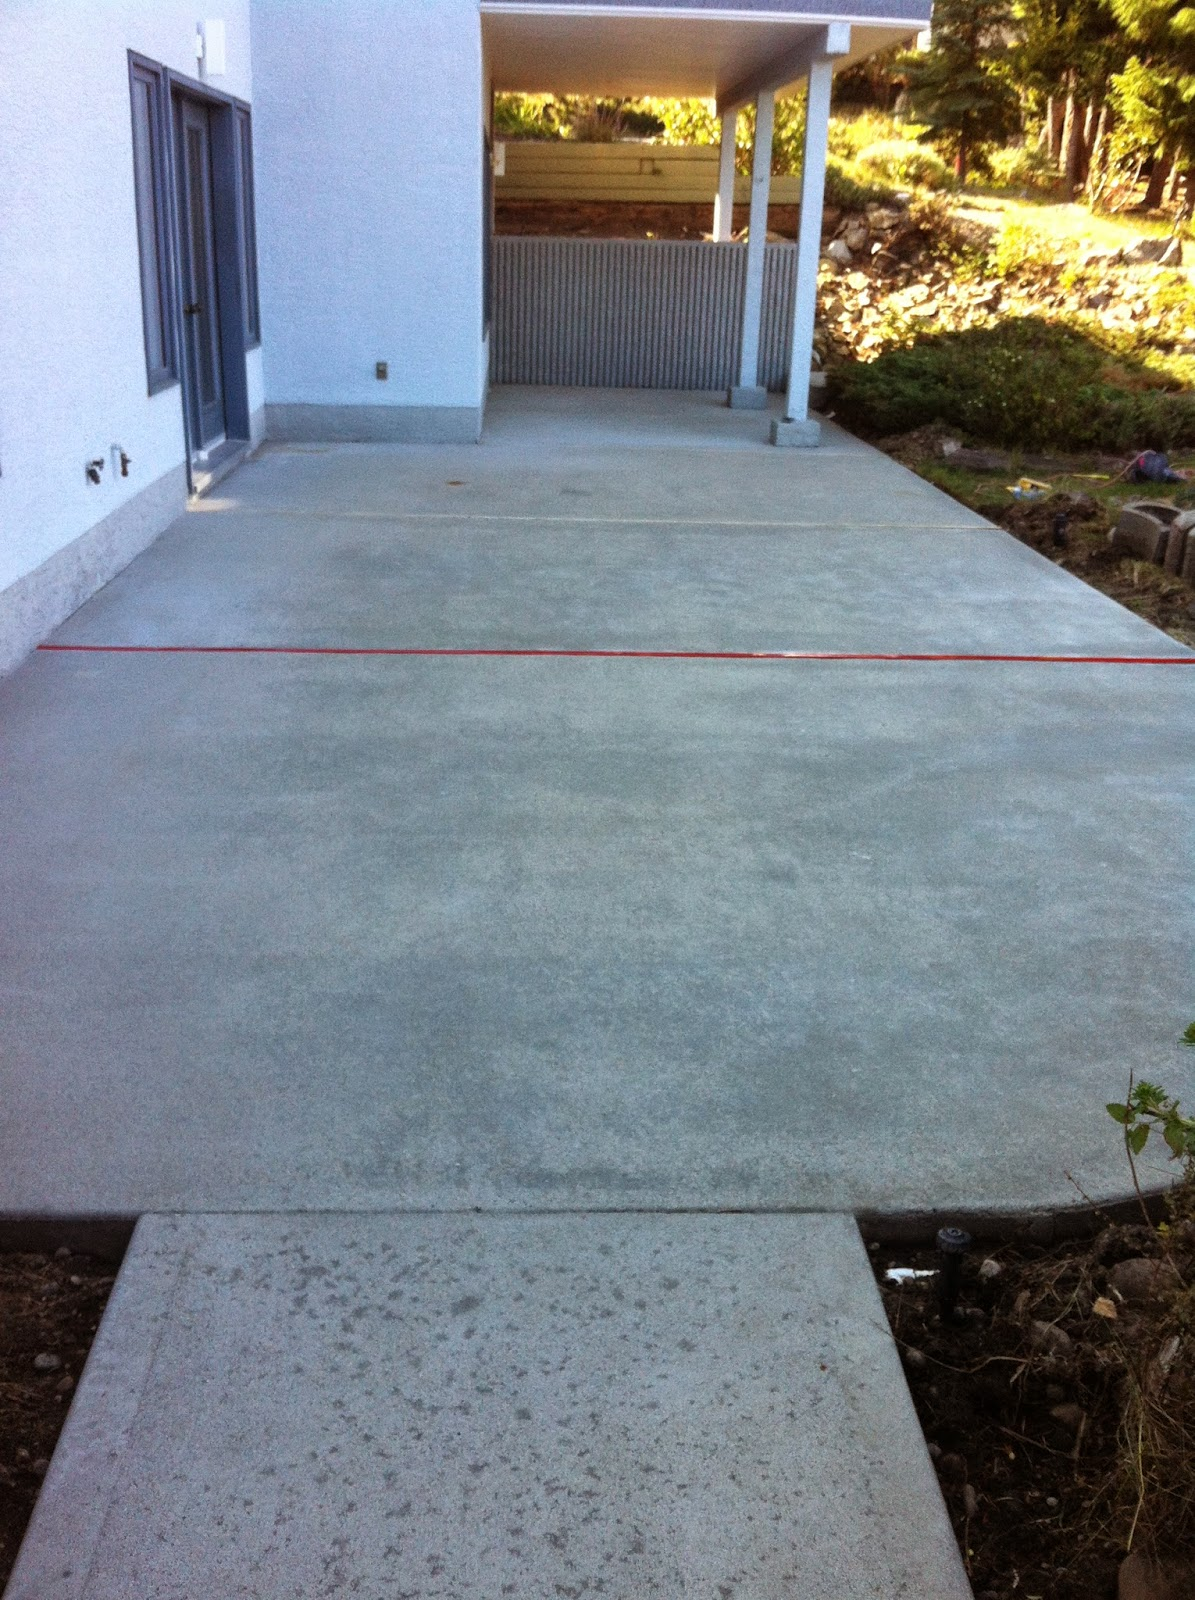 MODE CONCRETE: Give New Life to your Concrete with Acid